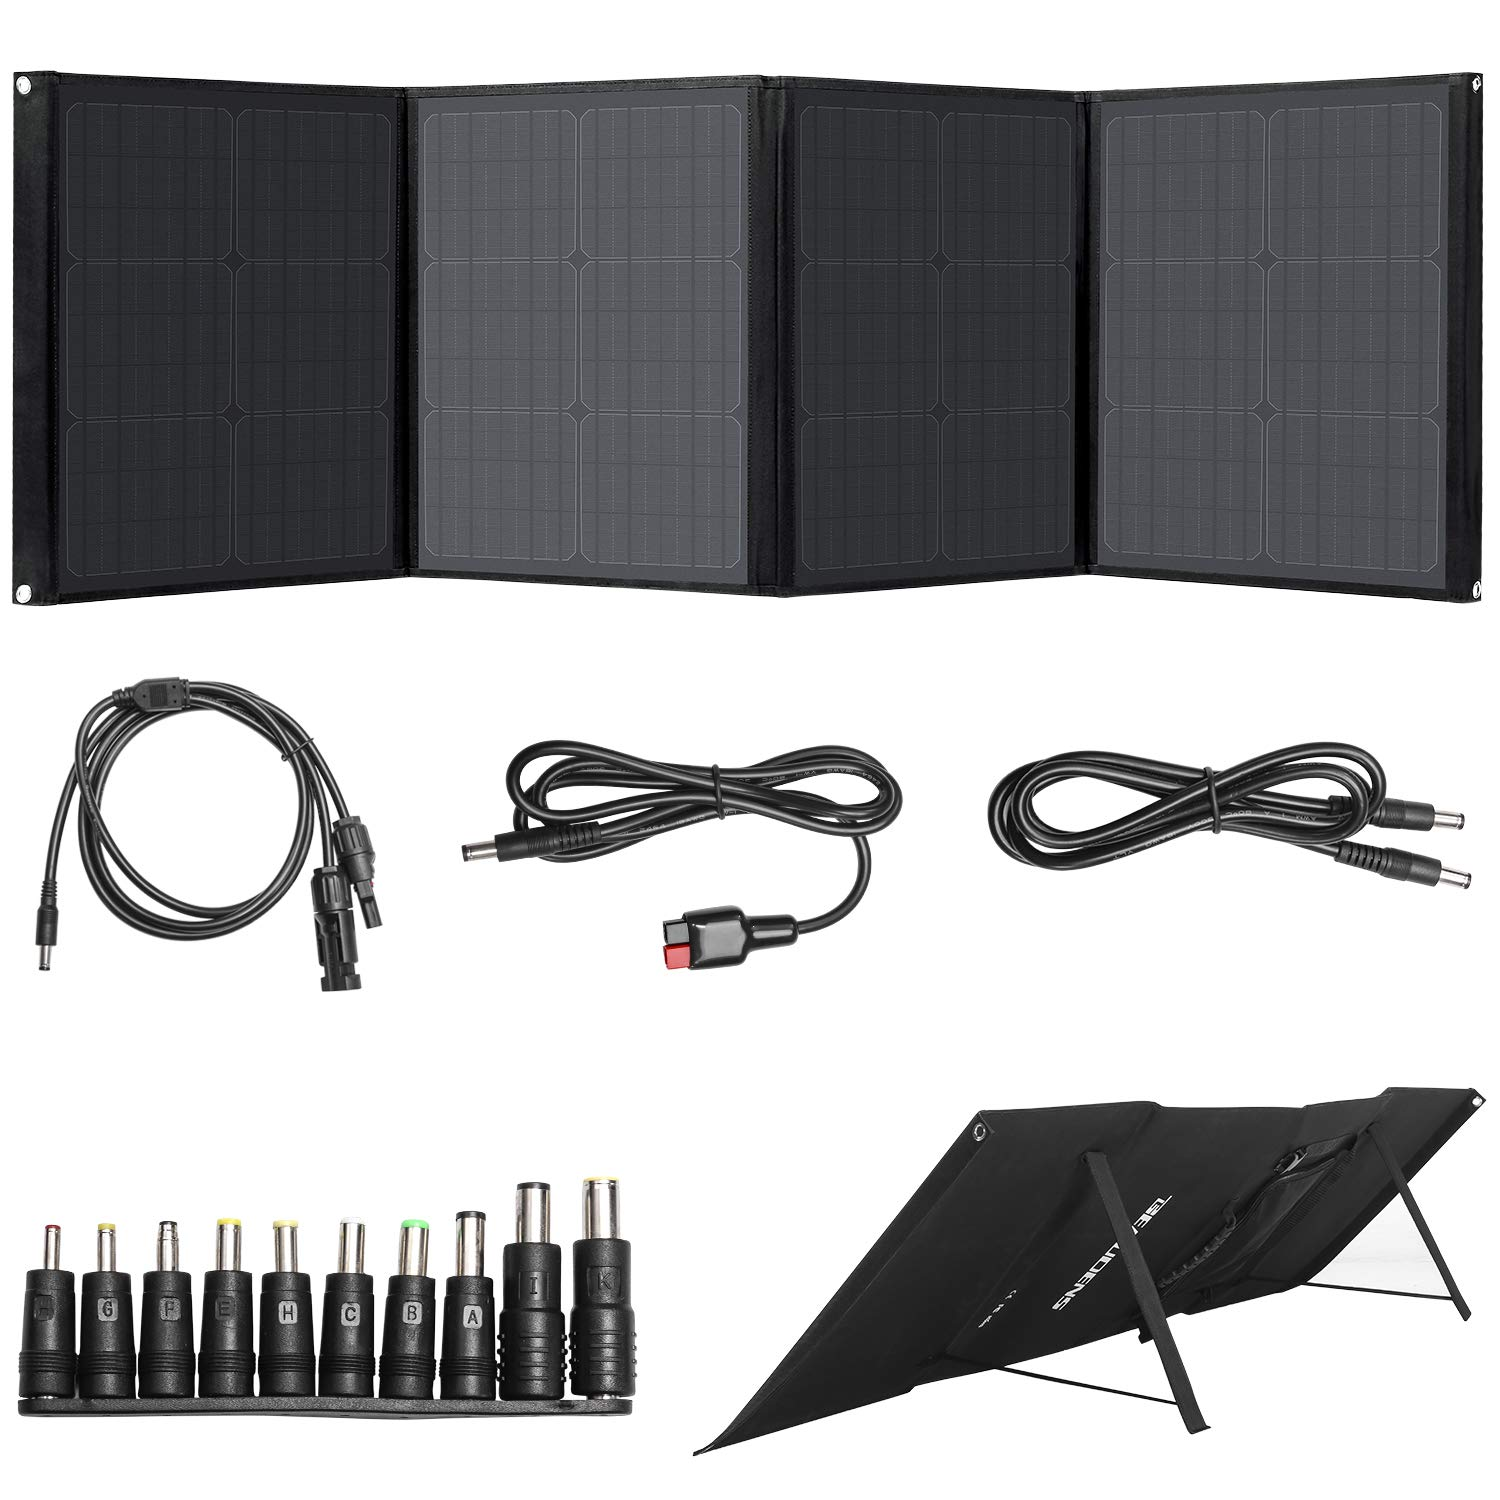 BEAUDENS 100W Solar Panel, Foldable Stand, Support Type C/DC/QC3.0/USB Ports, Portable Solar Charger for Jackery Explorer 240/Suaoki/Enkeeo/ROCKPALS Power Station Generator and Laptop iPhone iPad by BEAUDENS